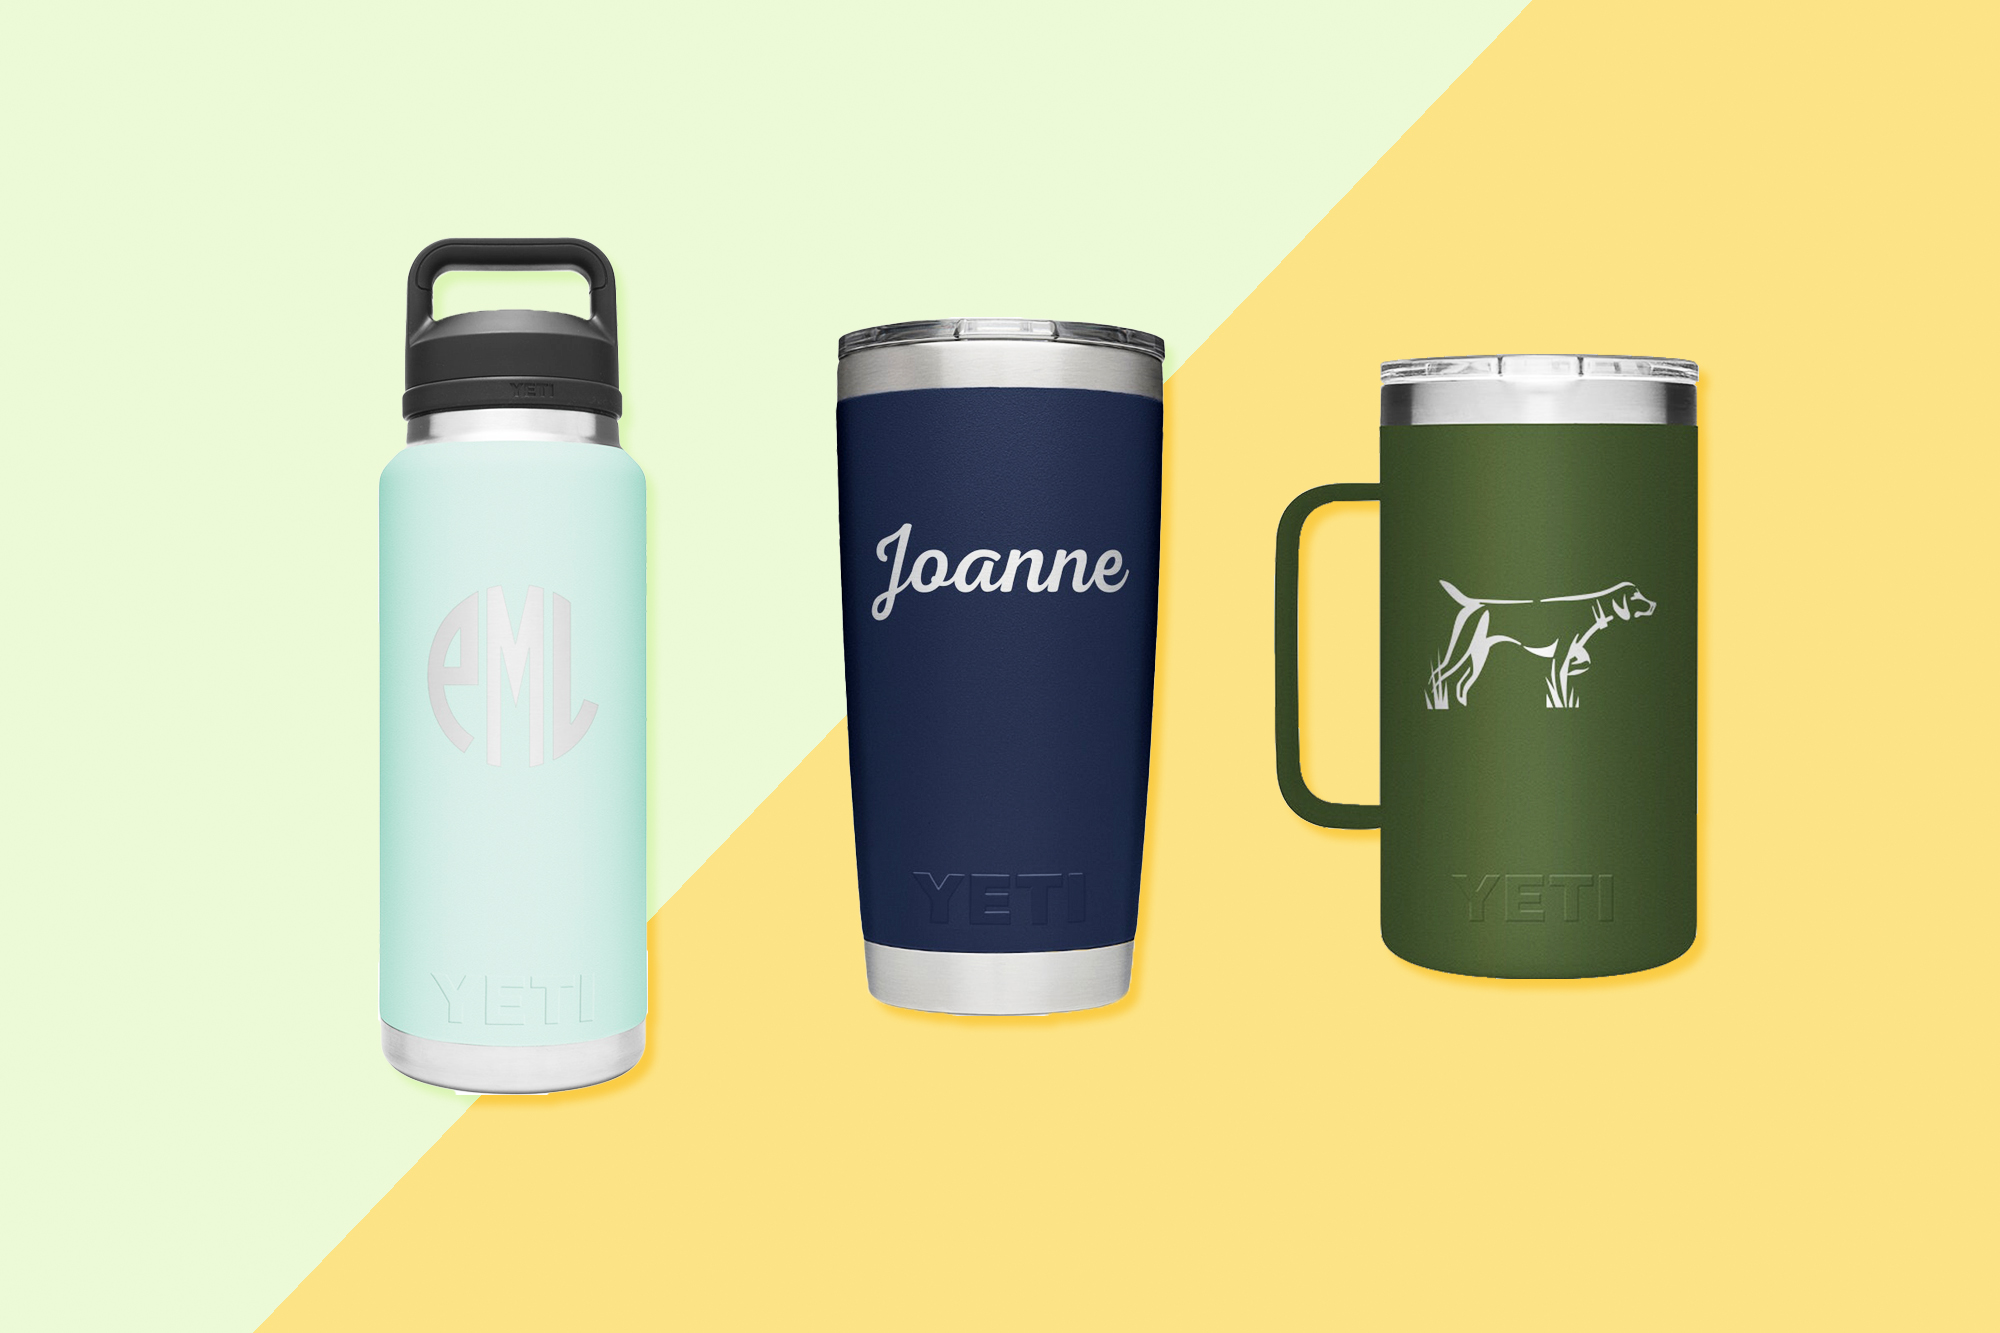 3 different Yeti insulated cups and bottles with monograms on a designed background